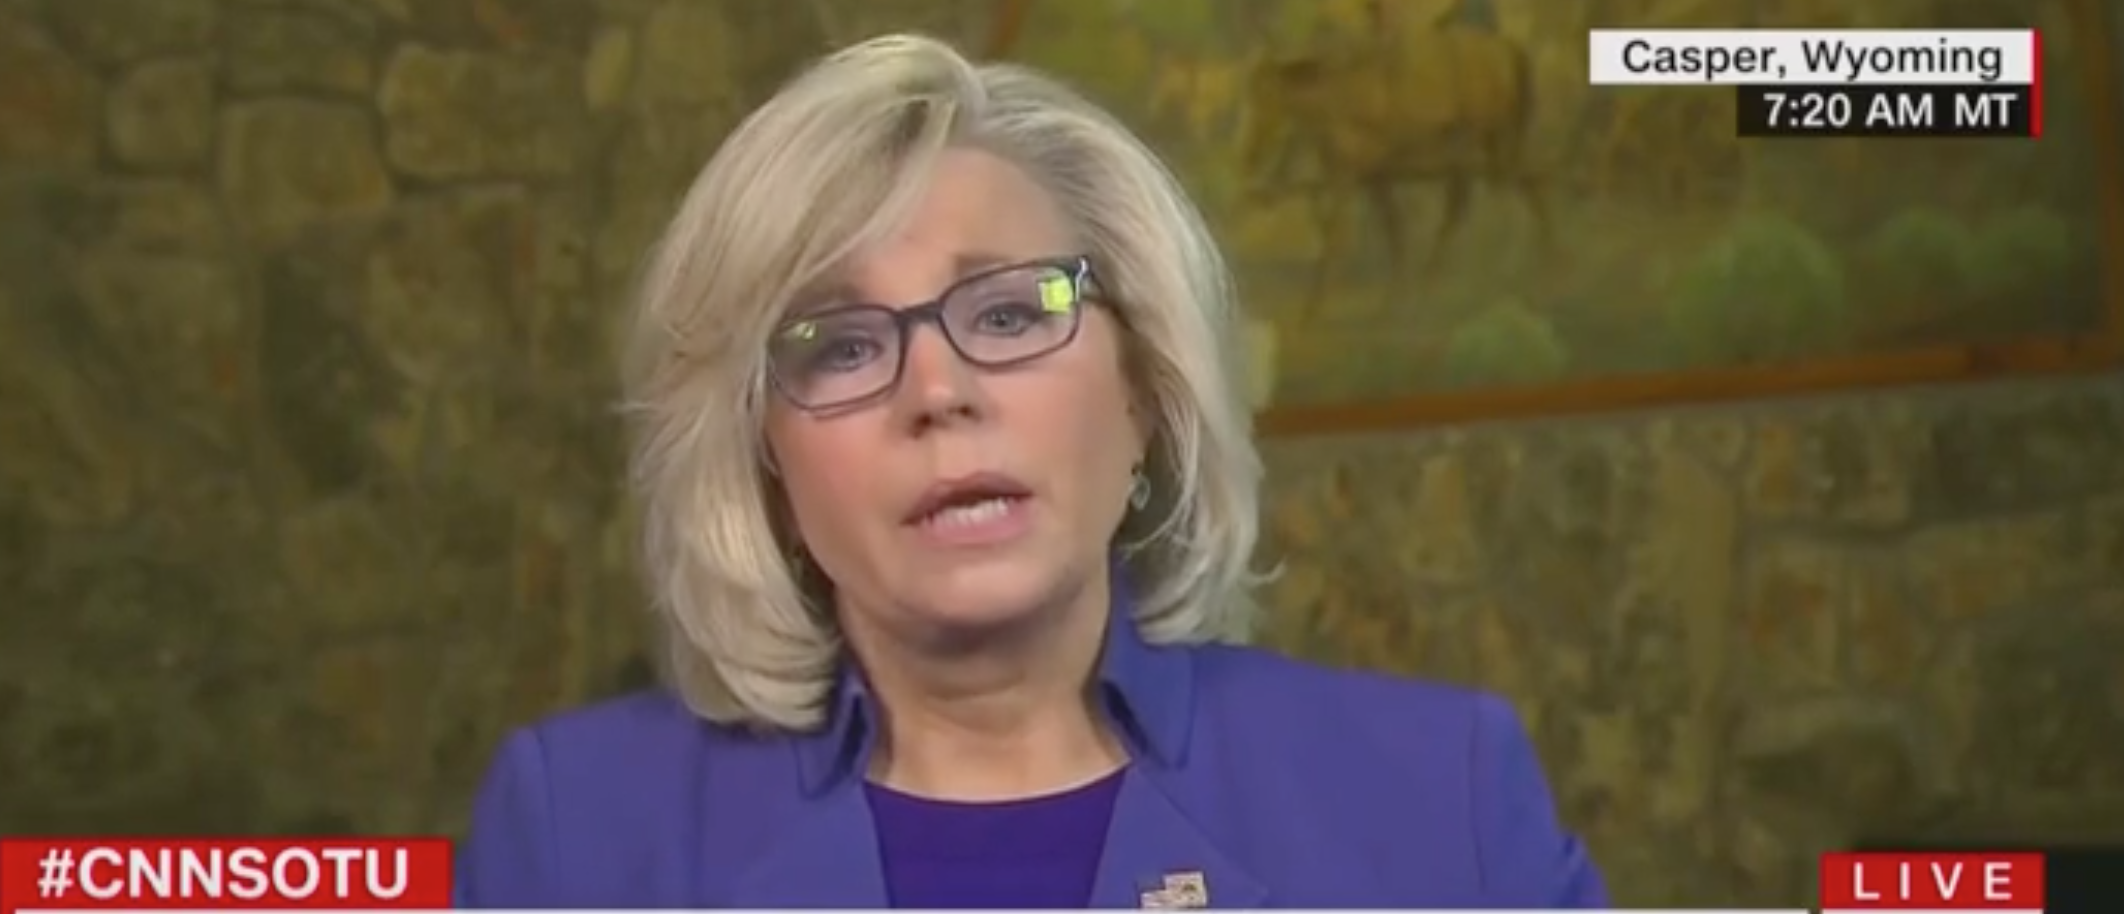 Liz Cheney Refuses To Attack Trump, Calls Warren 'A Laughingstock' Instead